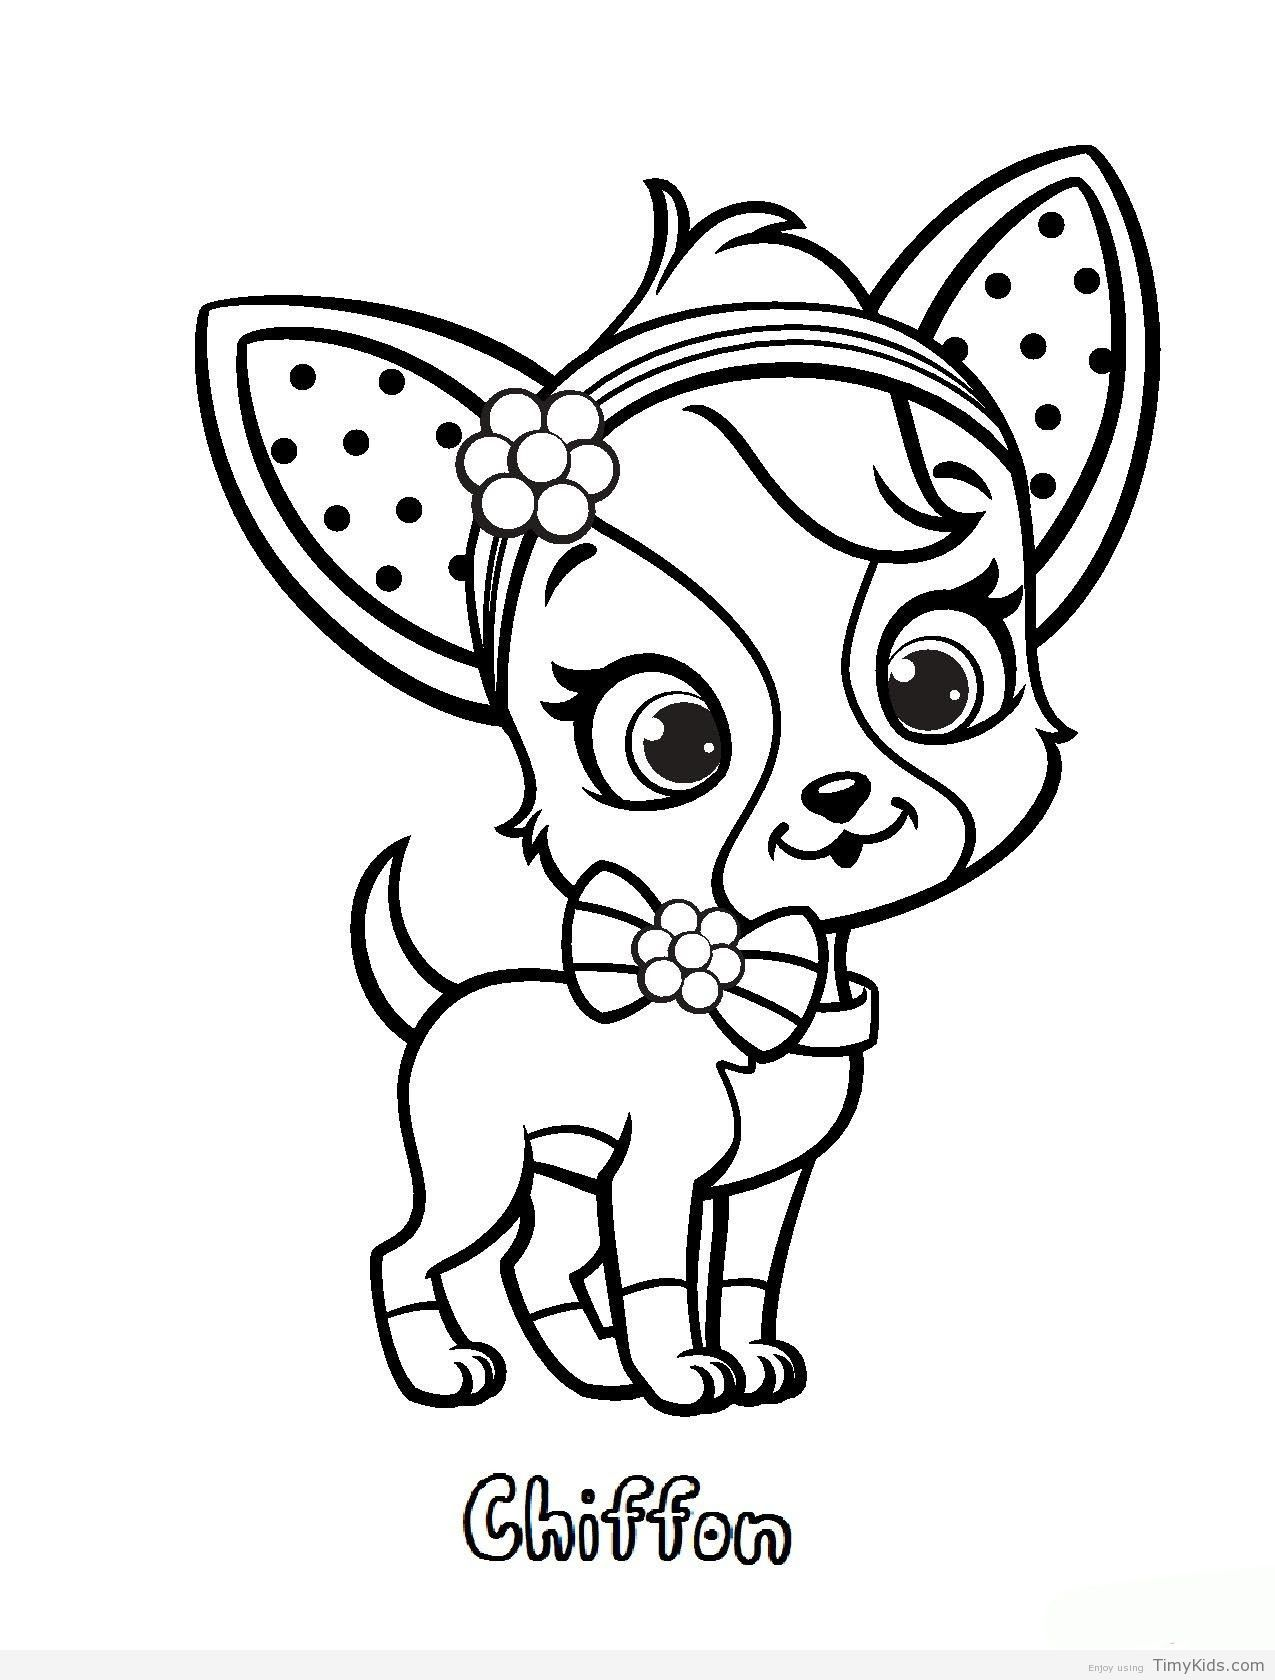 Mobile shimmer and shine coloring games coloring pages ausmalbilder - Http Timykids Com Strawberry Shortcake Pets Coloring